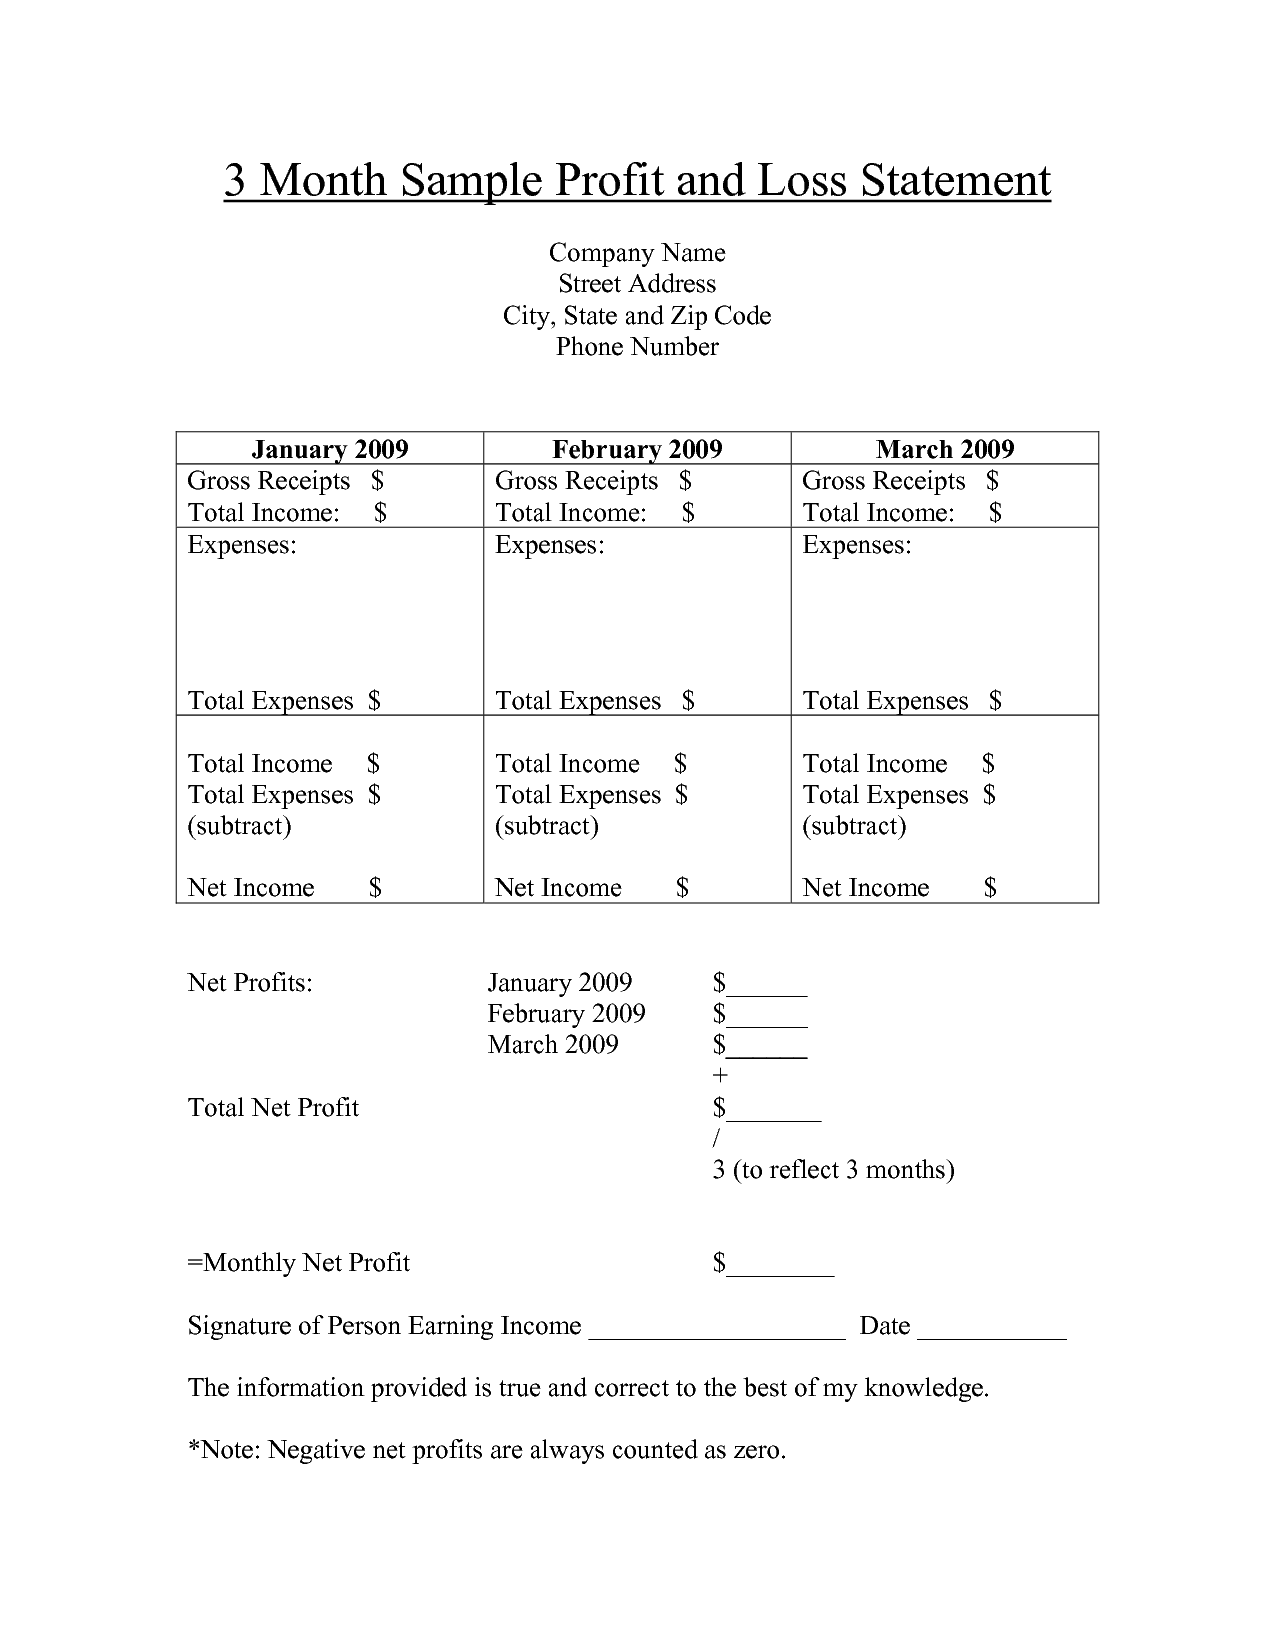 Free Printable Profit and Loss Statement Form for Home Care Bing – Profit and Loss Template for Self Employed Free